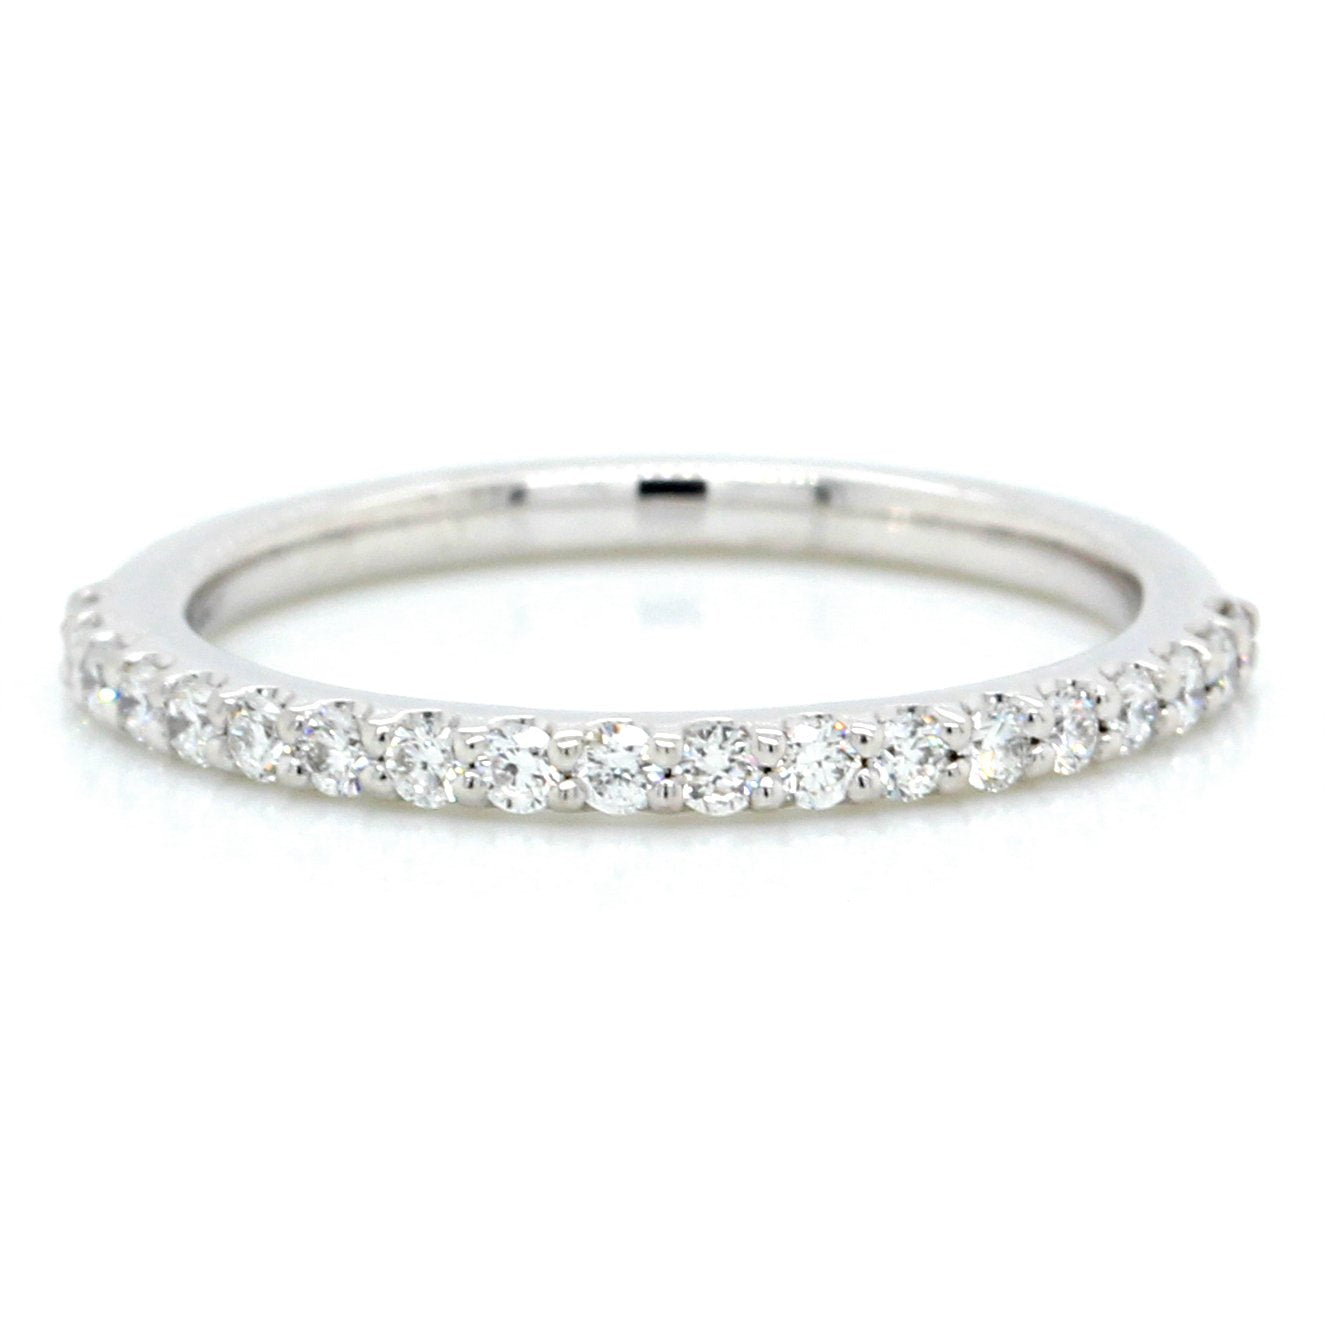 18K White Gold French Set Diamond Band